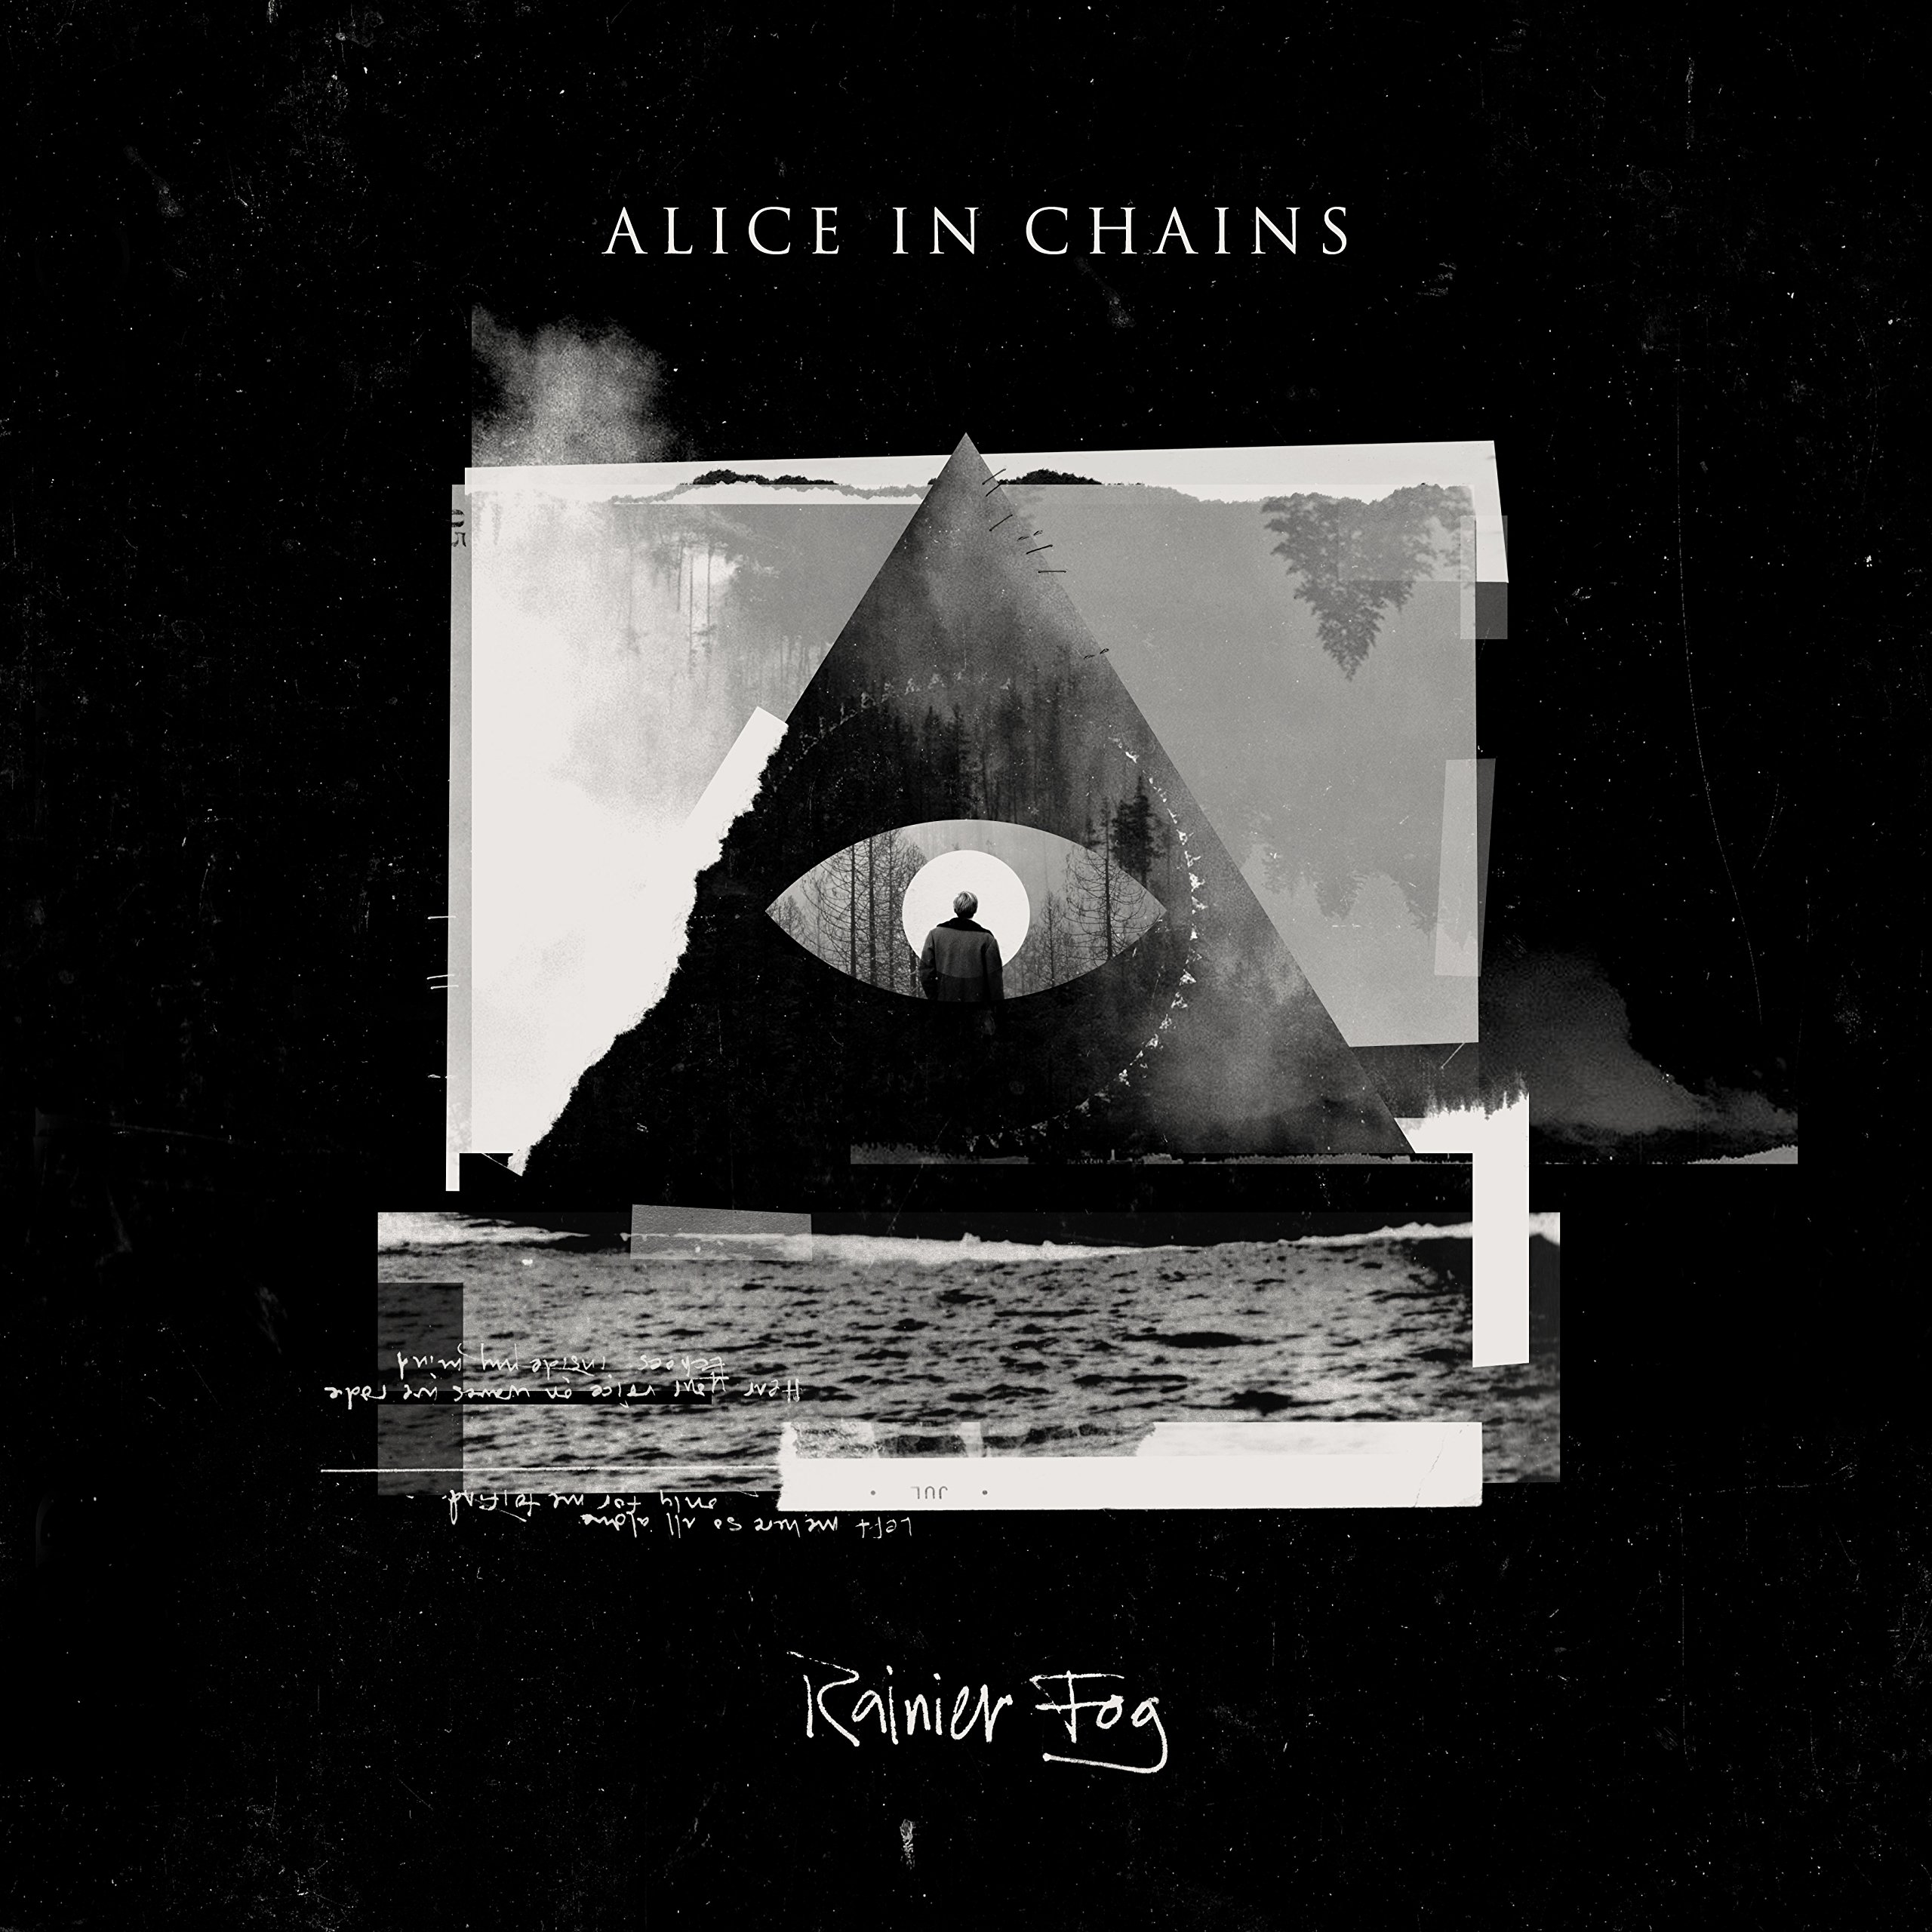 Vinilo : Alice in Chains - Rainier Fog (180 Gram Vinyl, Digital Download Card, 2PC)